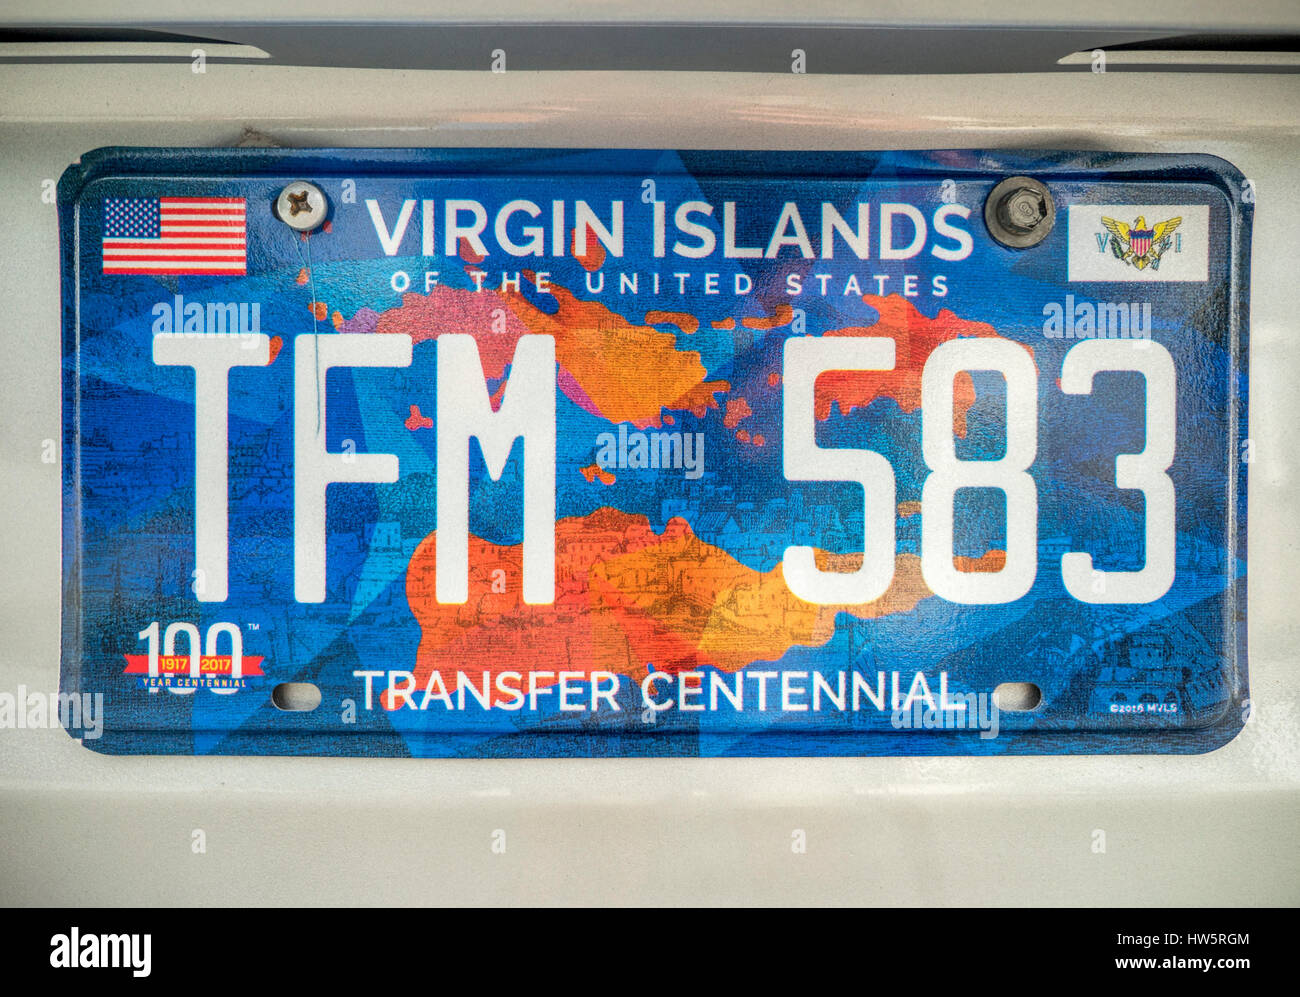 U.S. Virgin Islands Car Vehicle Registration Licence Plates Tag On The Back Of Cars Stock Photo